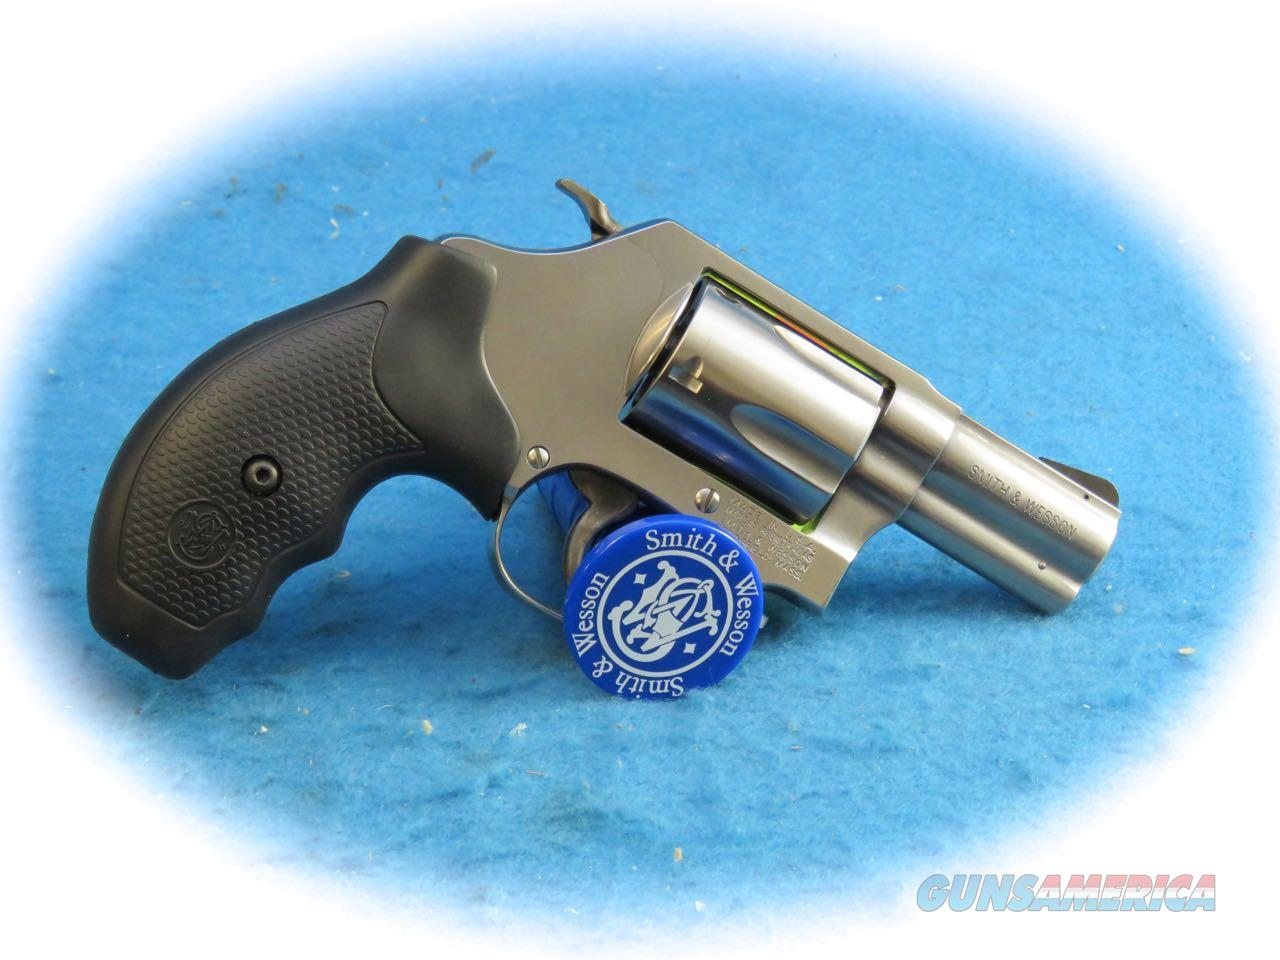 Smith & Wesson Model 60 .357 Mag SS Revolver **New**  Guns > Pistols > Smith & Wesson Revolvers > Pocket Pistols